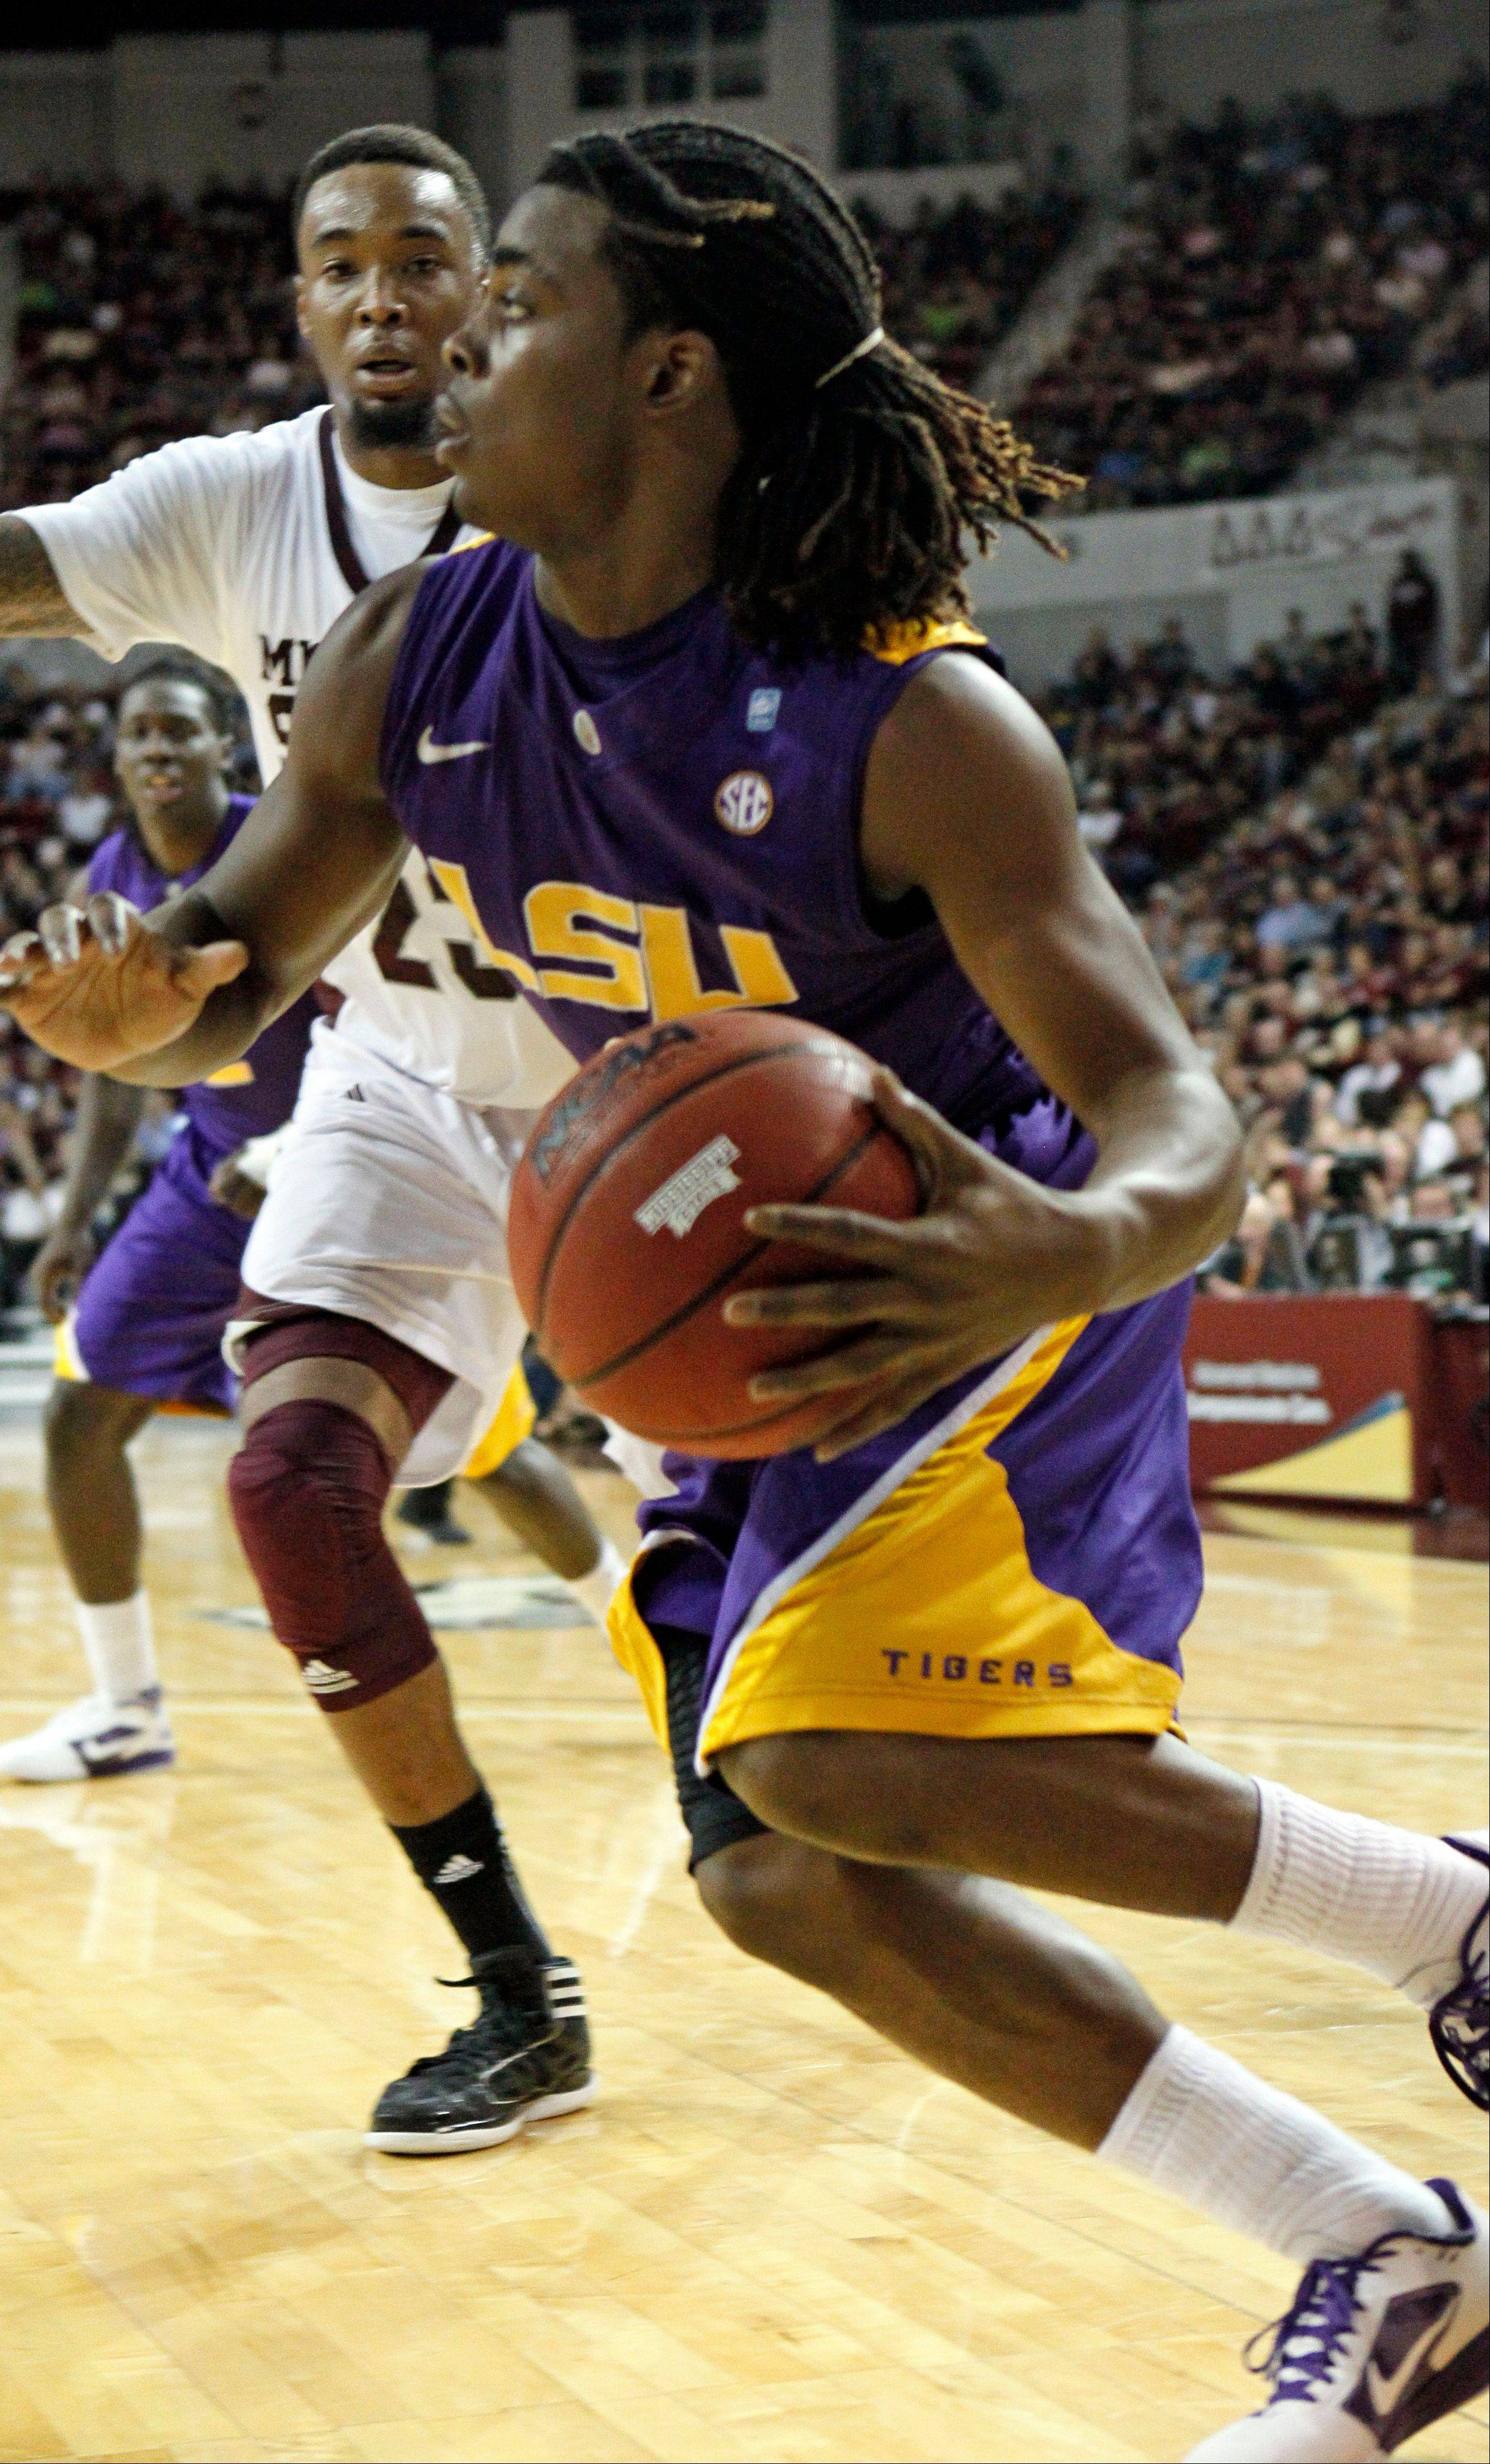 LSU falls 76-71 to No. 18 Mississippi State